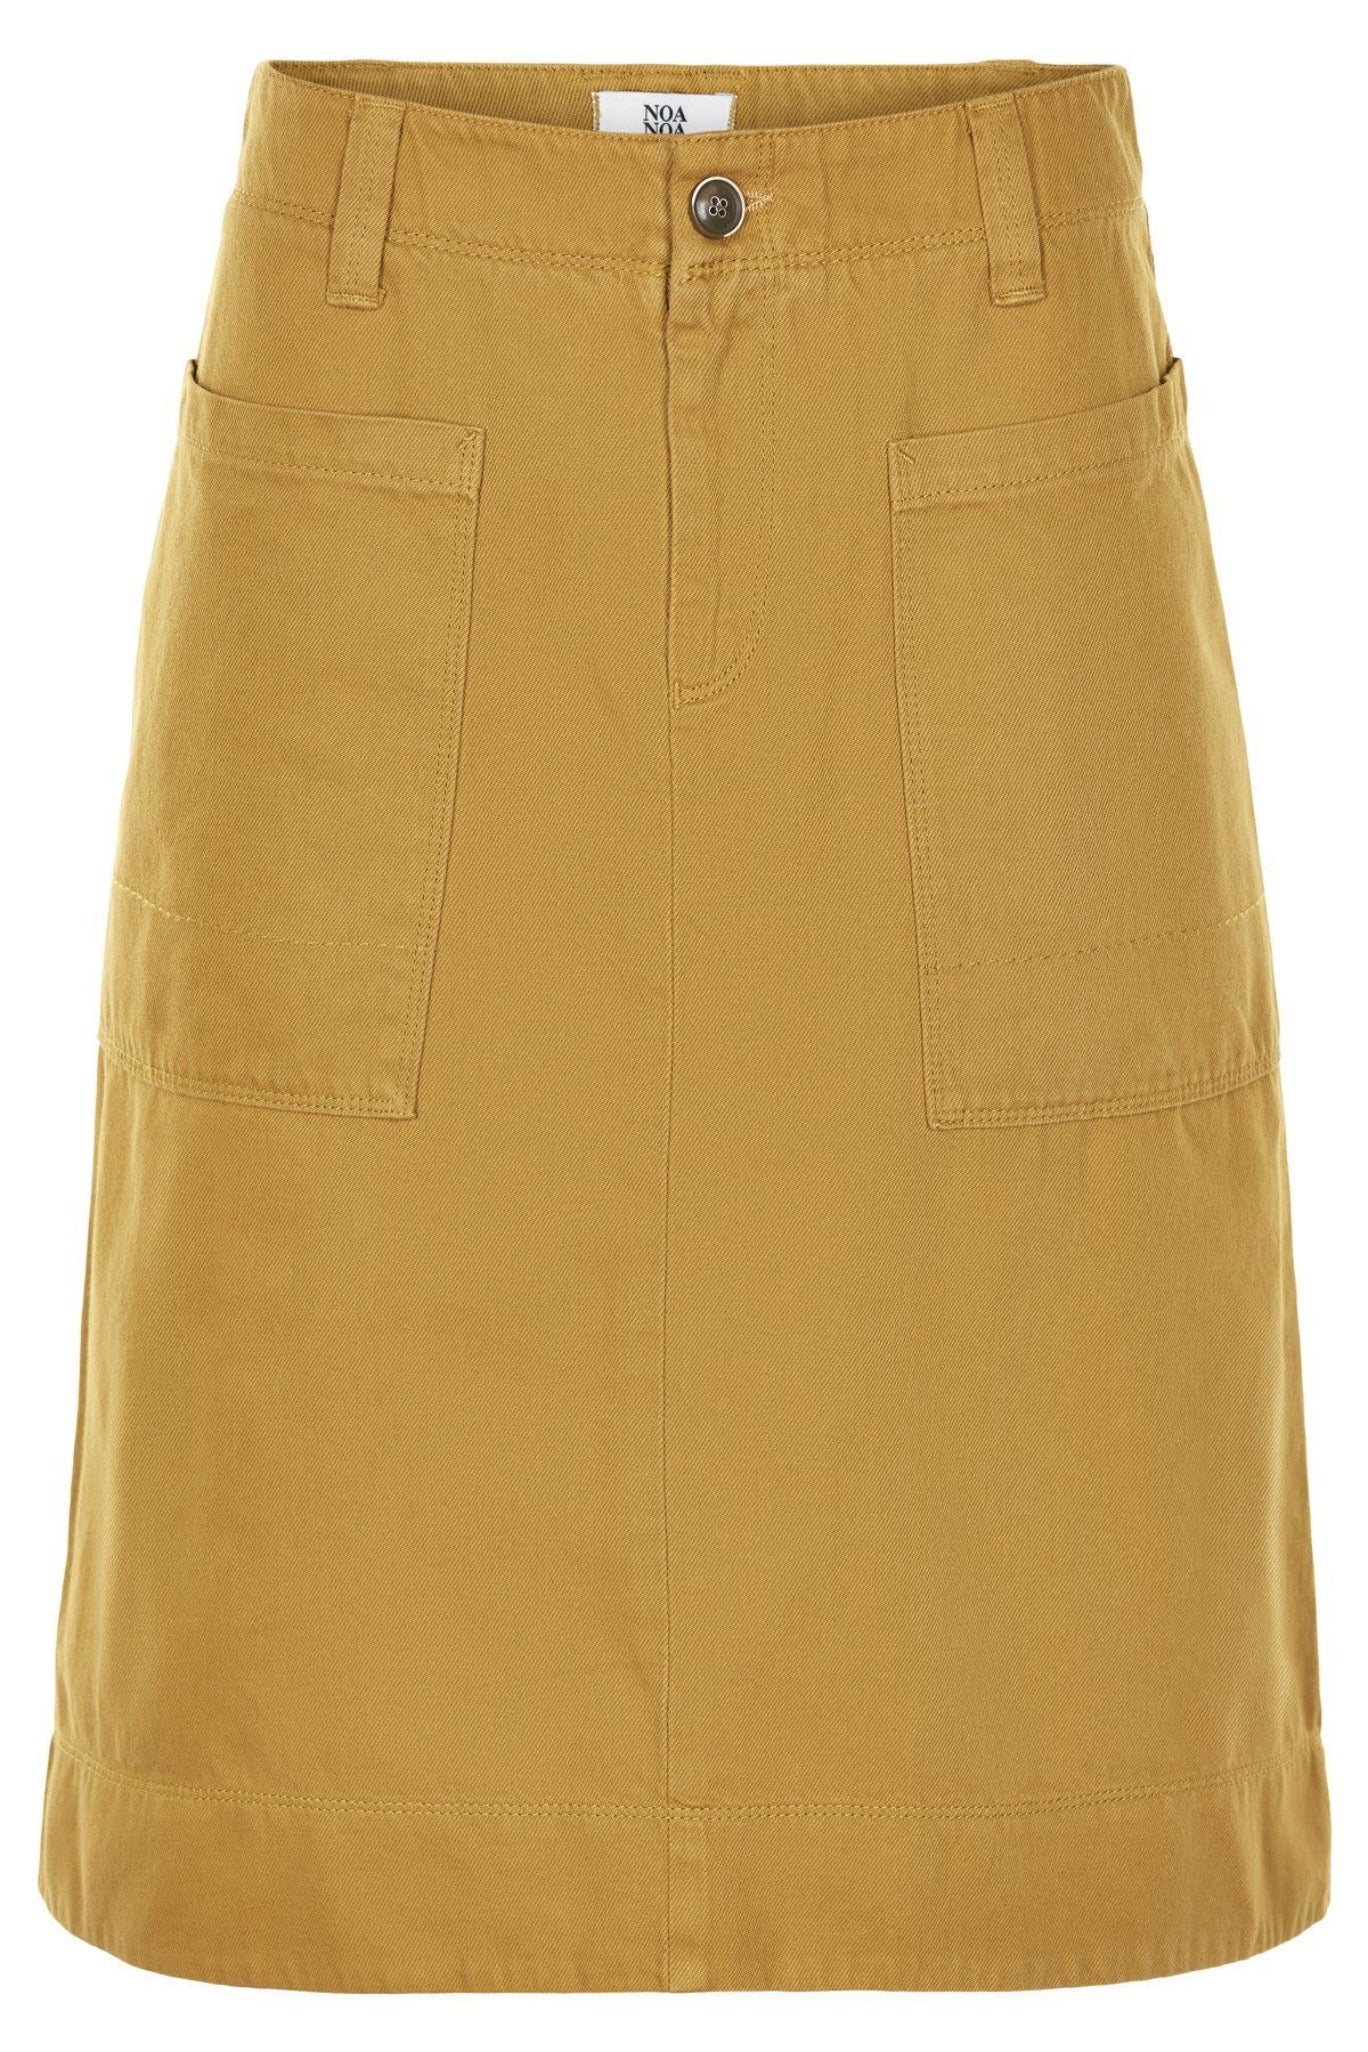 Noa Noa cotton twill A-line denim skirt in mustard yellow, patch pockets and zip front.